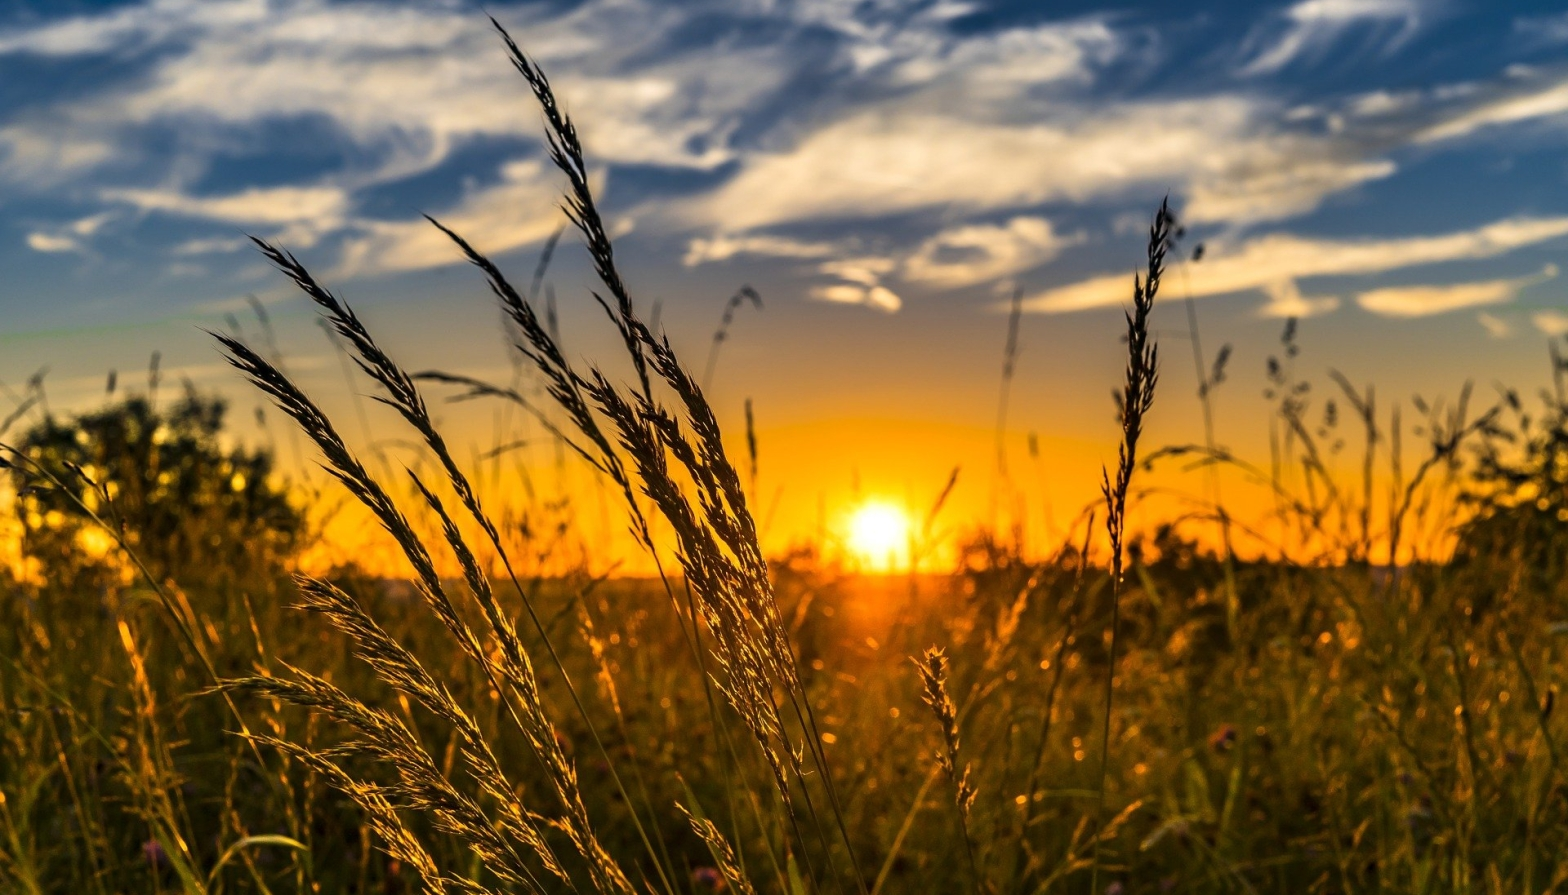 Poetry a field of tall wheat stalks against a sunset